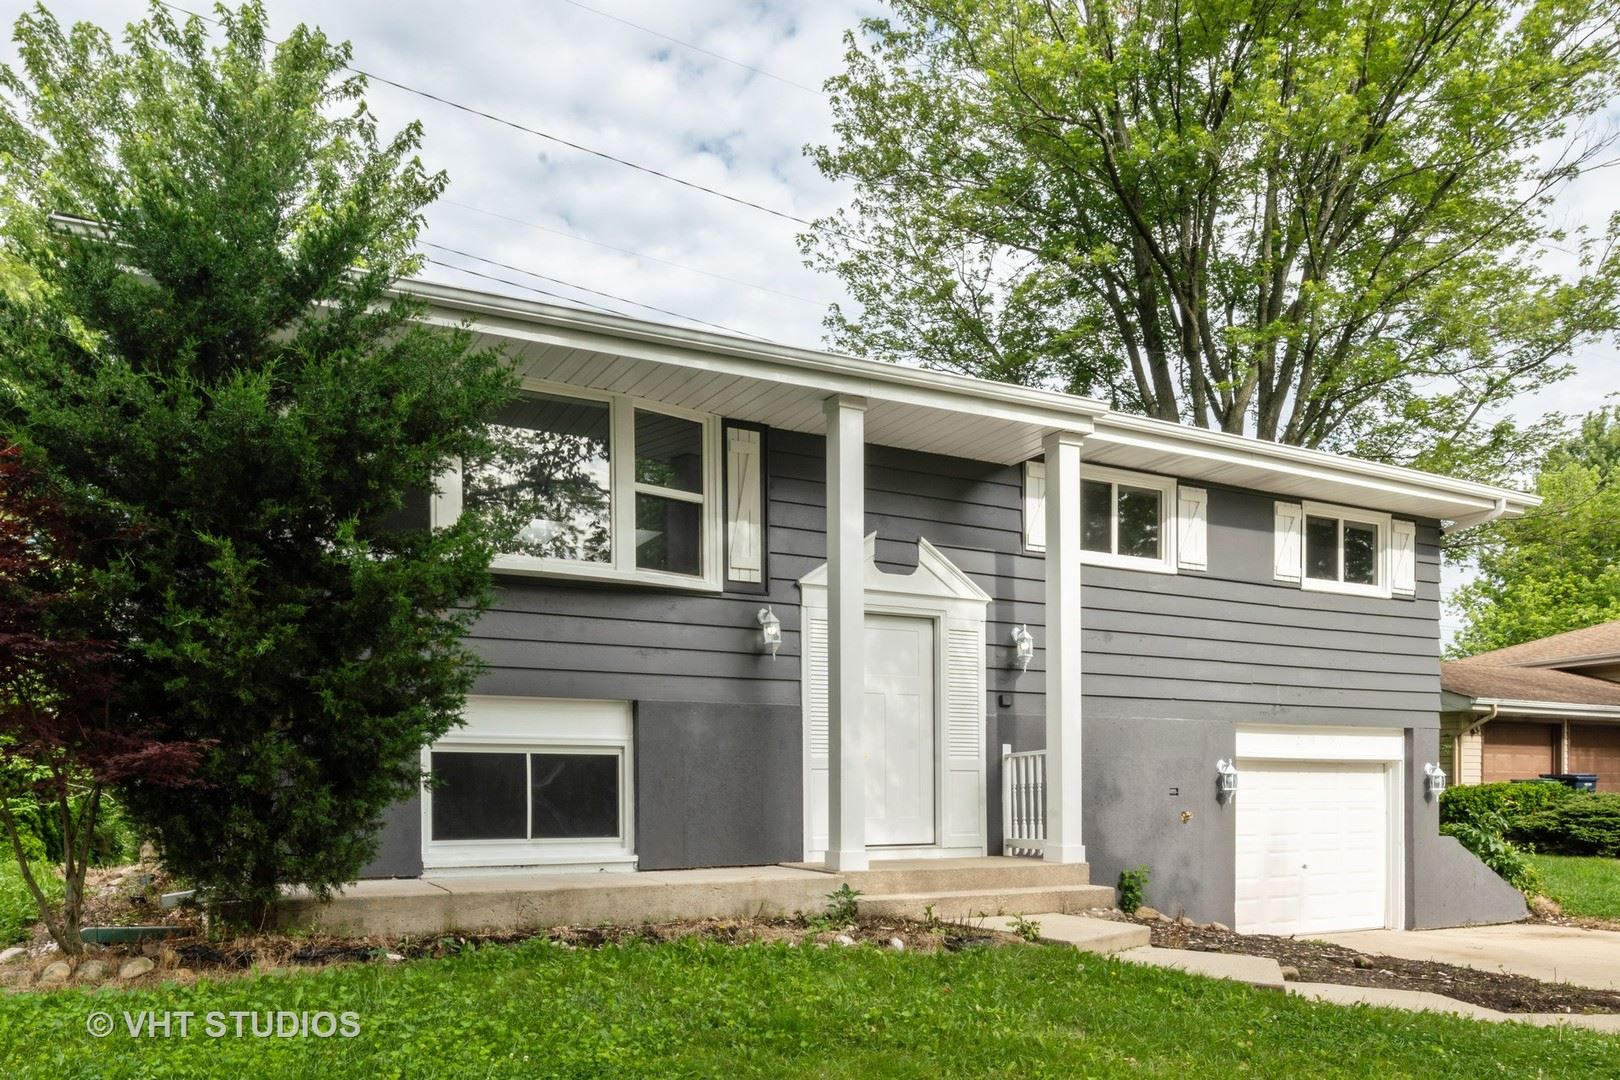 2S060 S Valley Road, Lombard, IL 60148 - #: 10685845